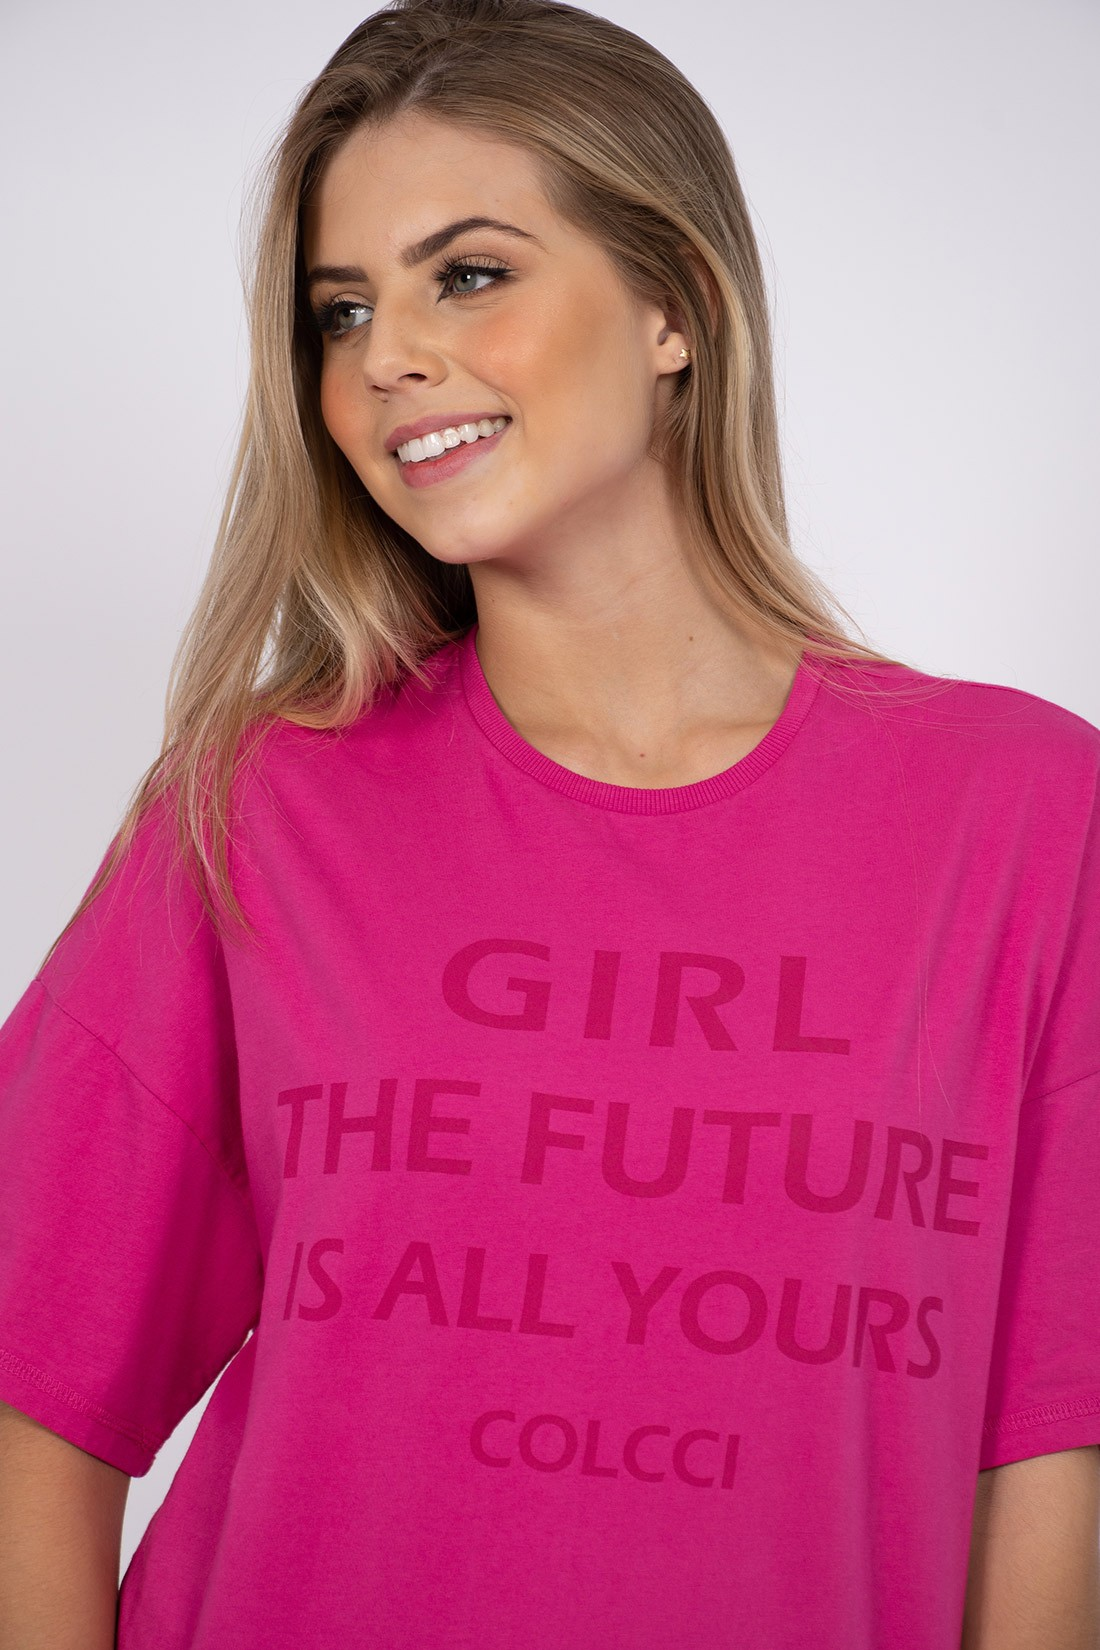 T Shirt Colcci Girl The Future Is All Yours